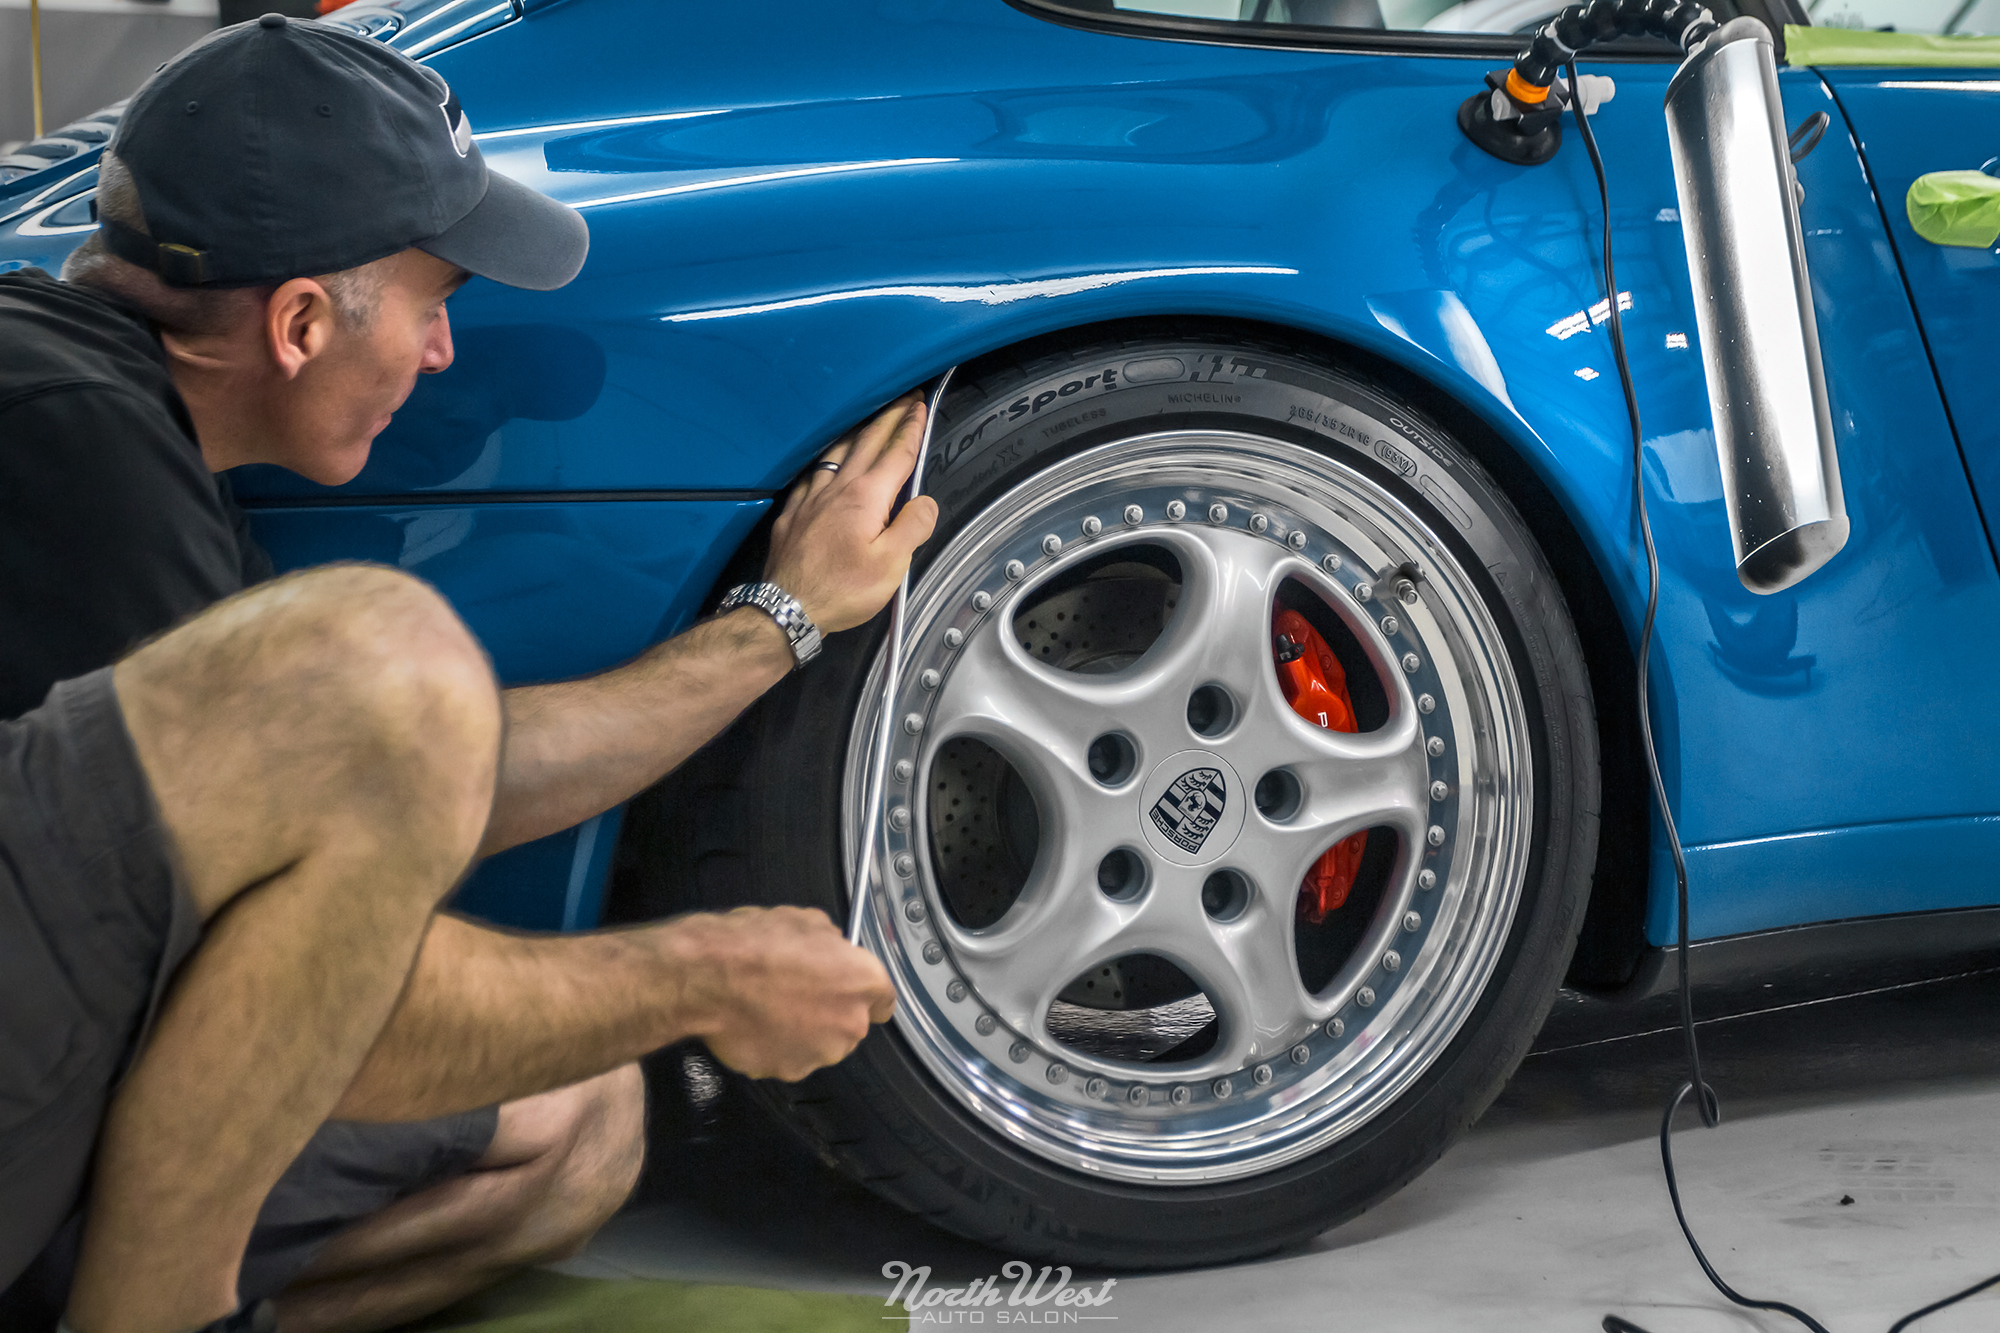 Rare Blue Turquoise 993 Recieves Fanatic Detail At Nwas